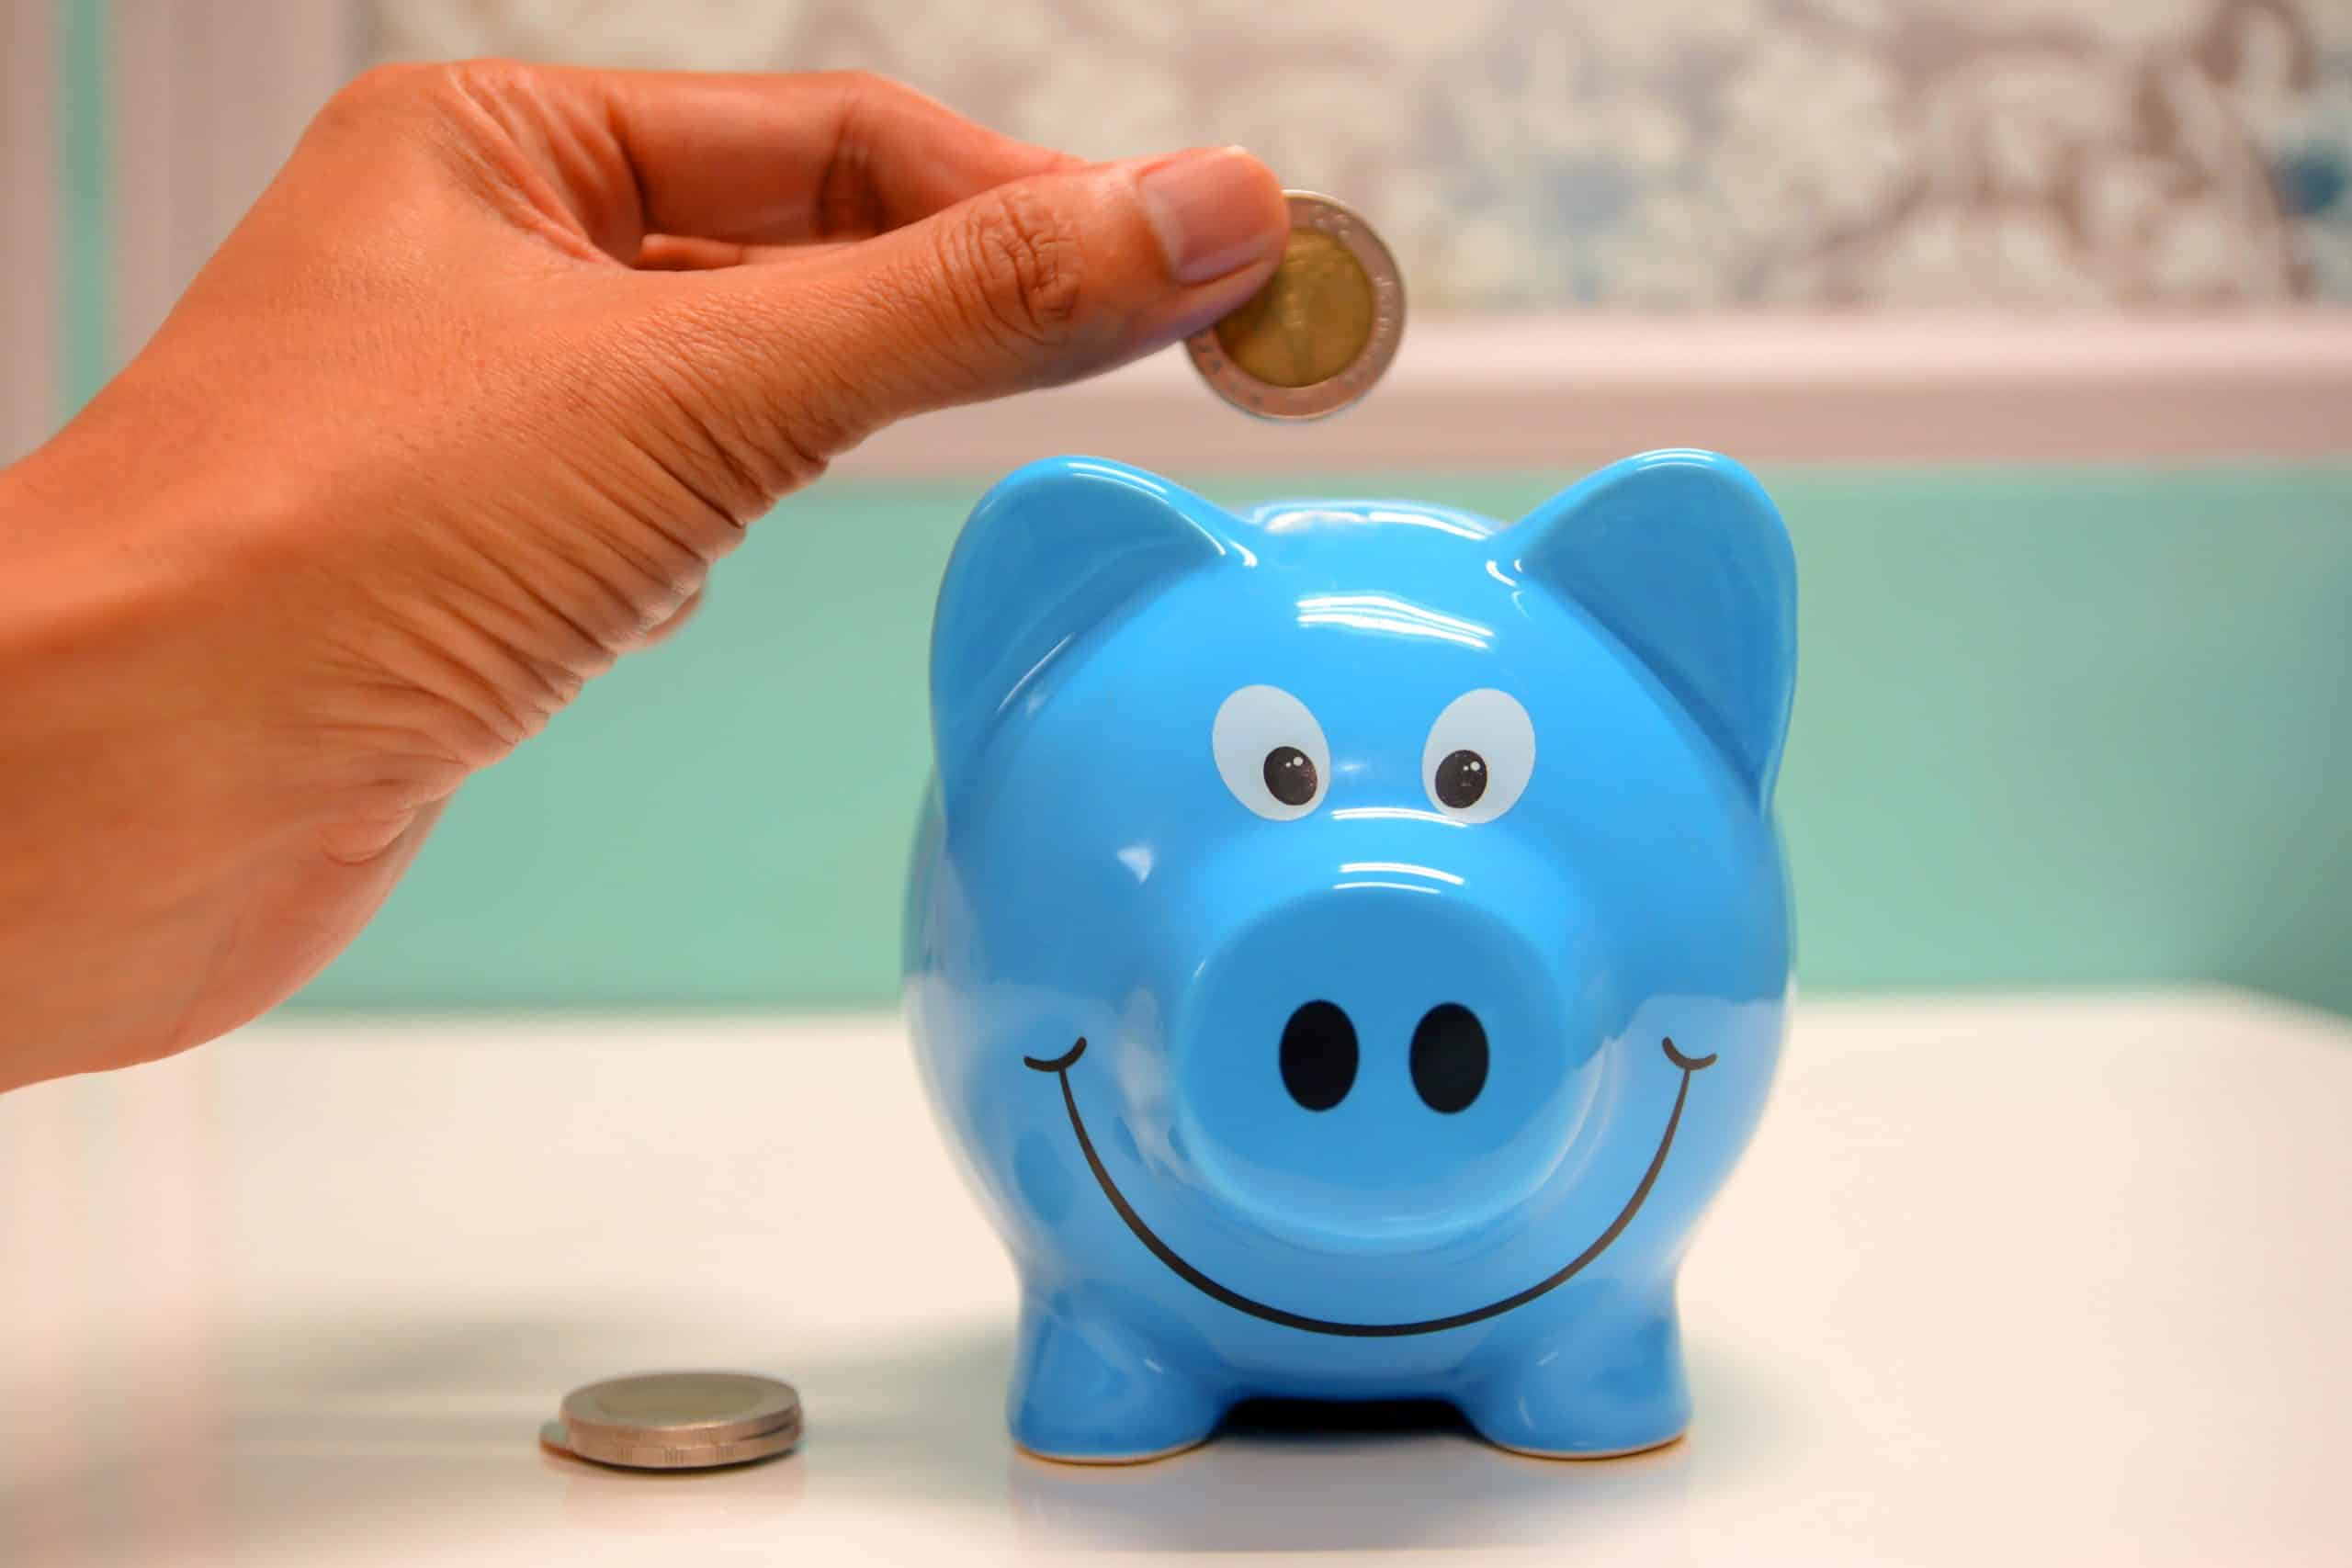 Putting money in the piggy bank